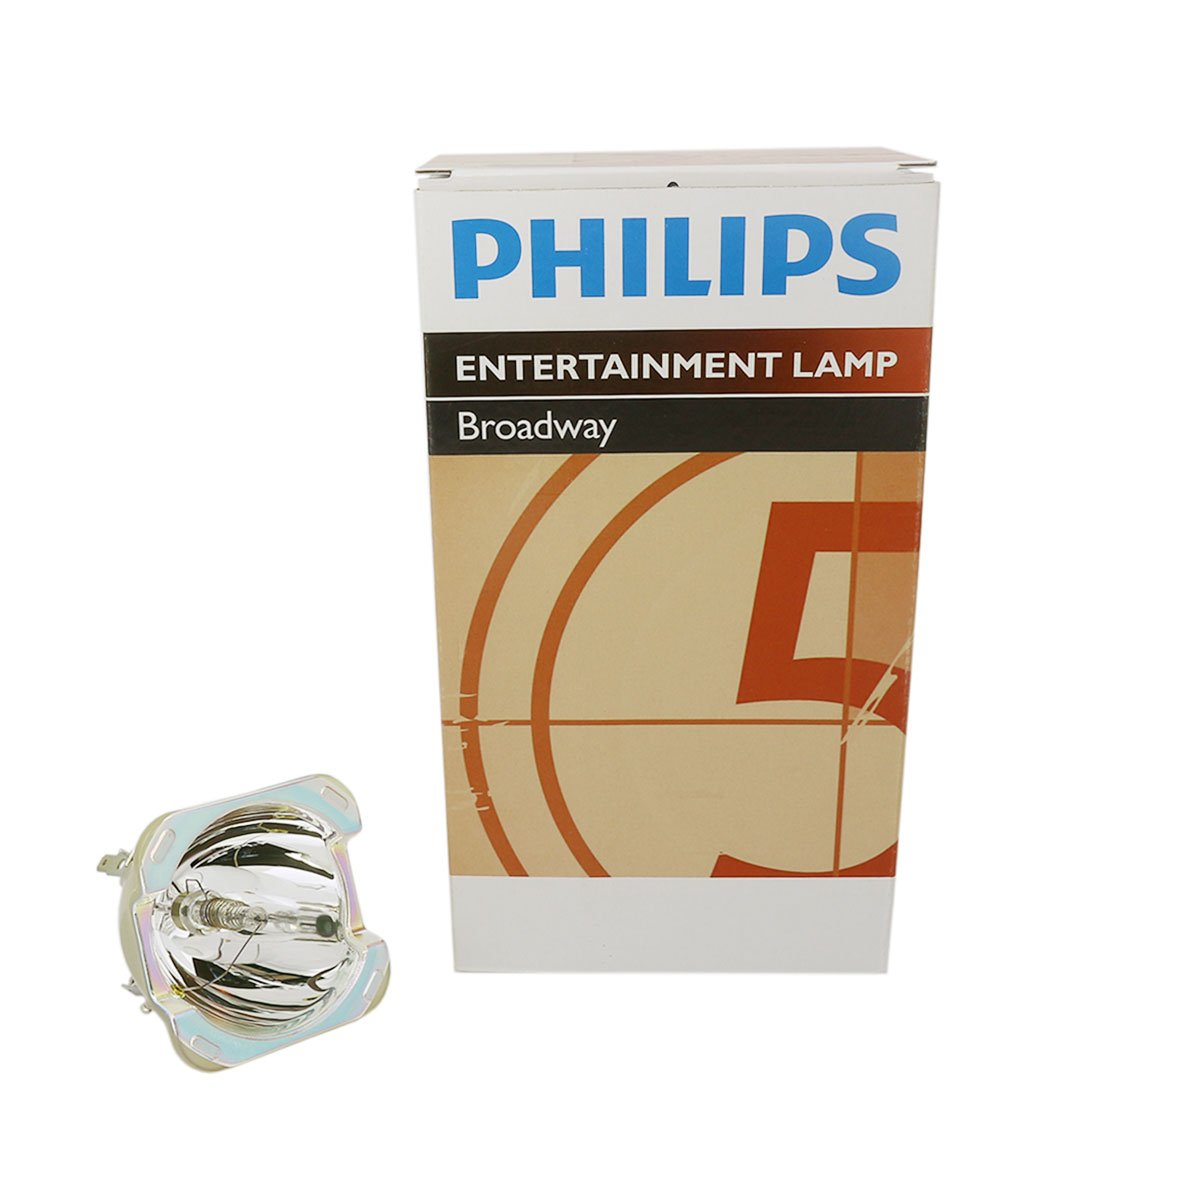 Philips MSD Platinum 16 R 330W 1.3 AC Lamp for Touring/Stage Lighting